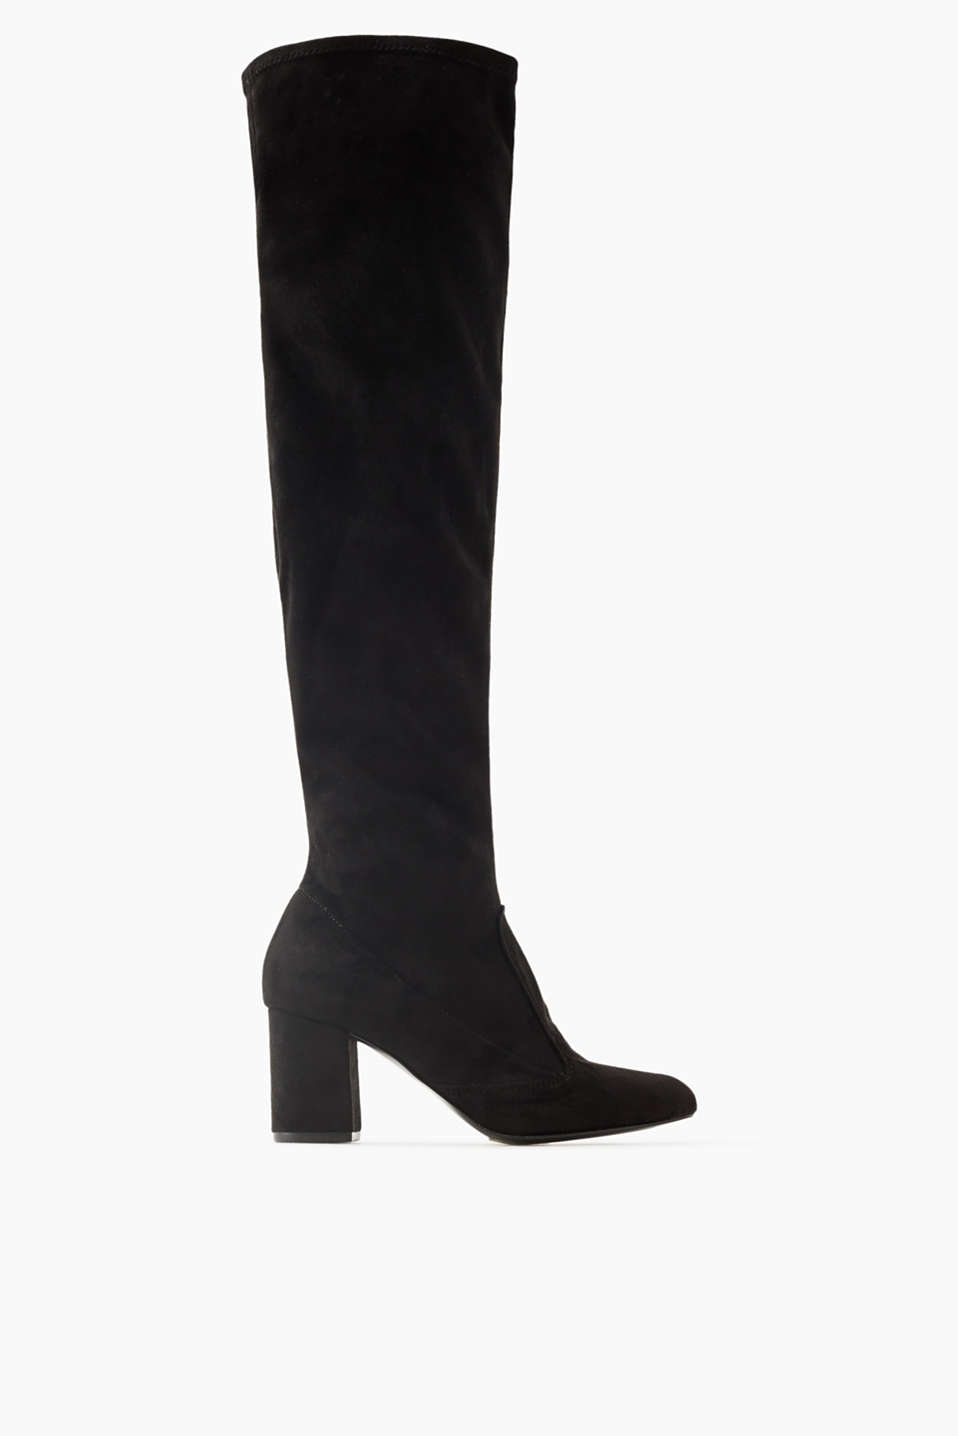 These velvety over-the-knee boots with stretch for comfort and a block heel are sexy and super comfortable!